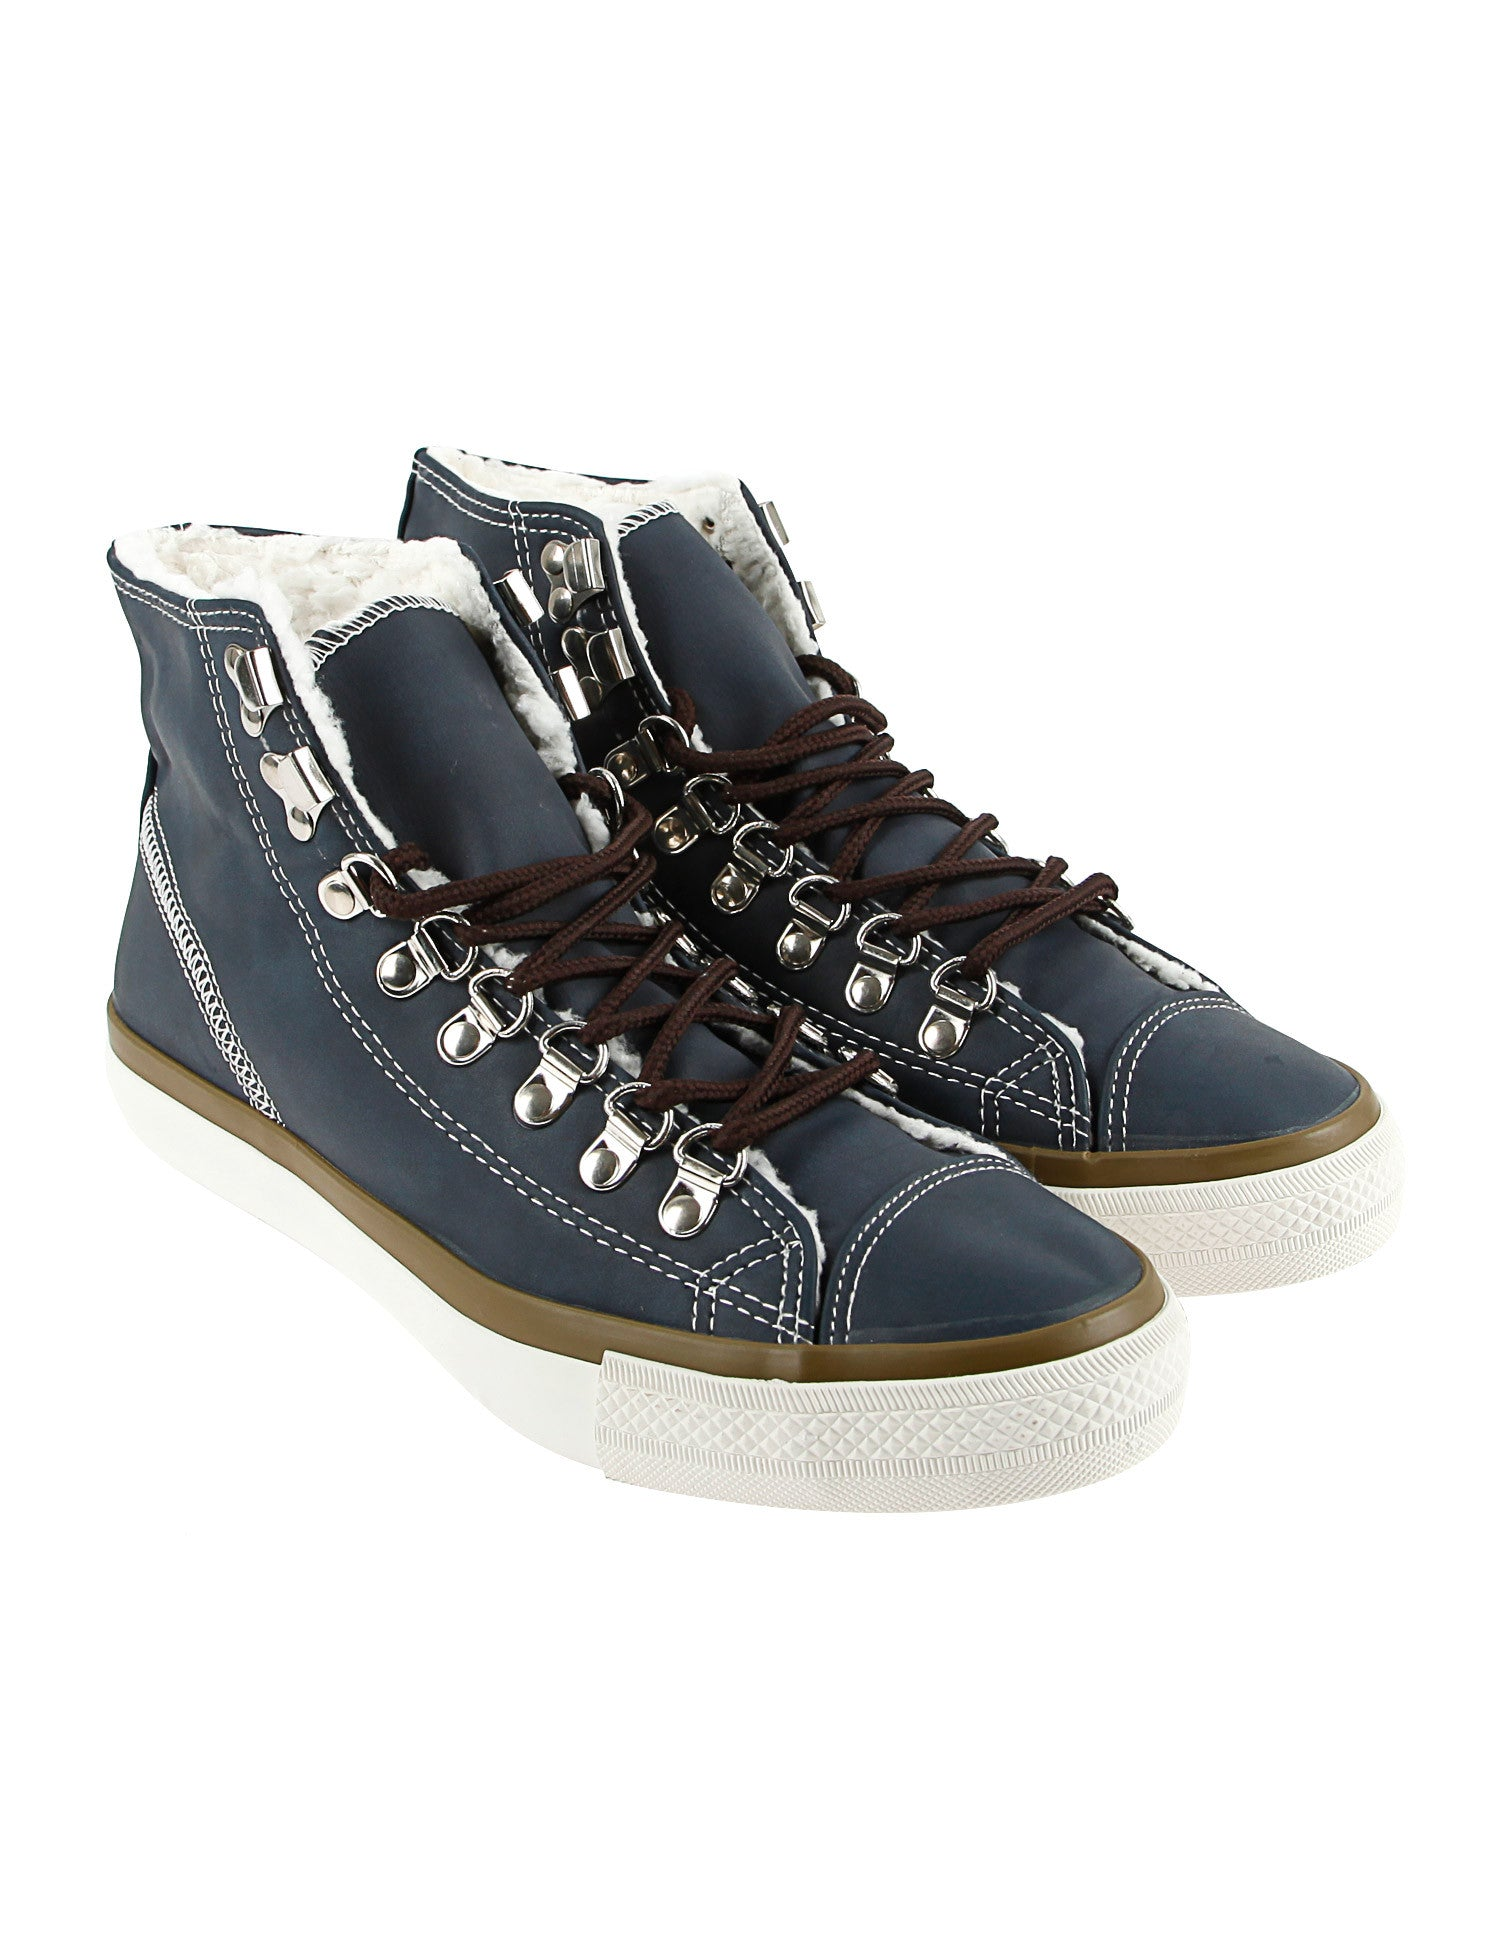 Cultz 9-6345 Shoes Navy